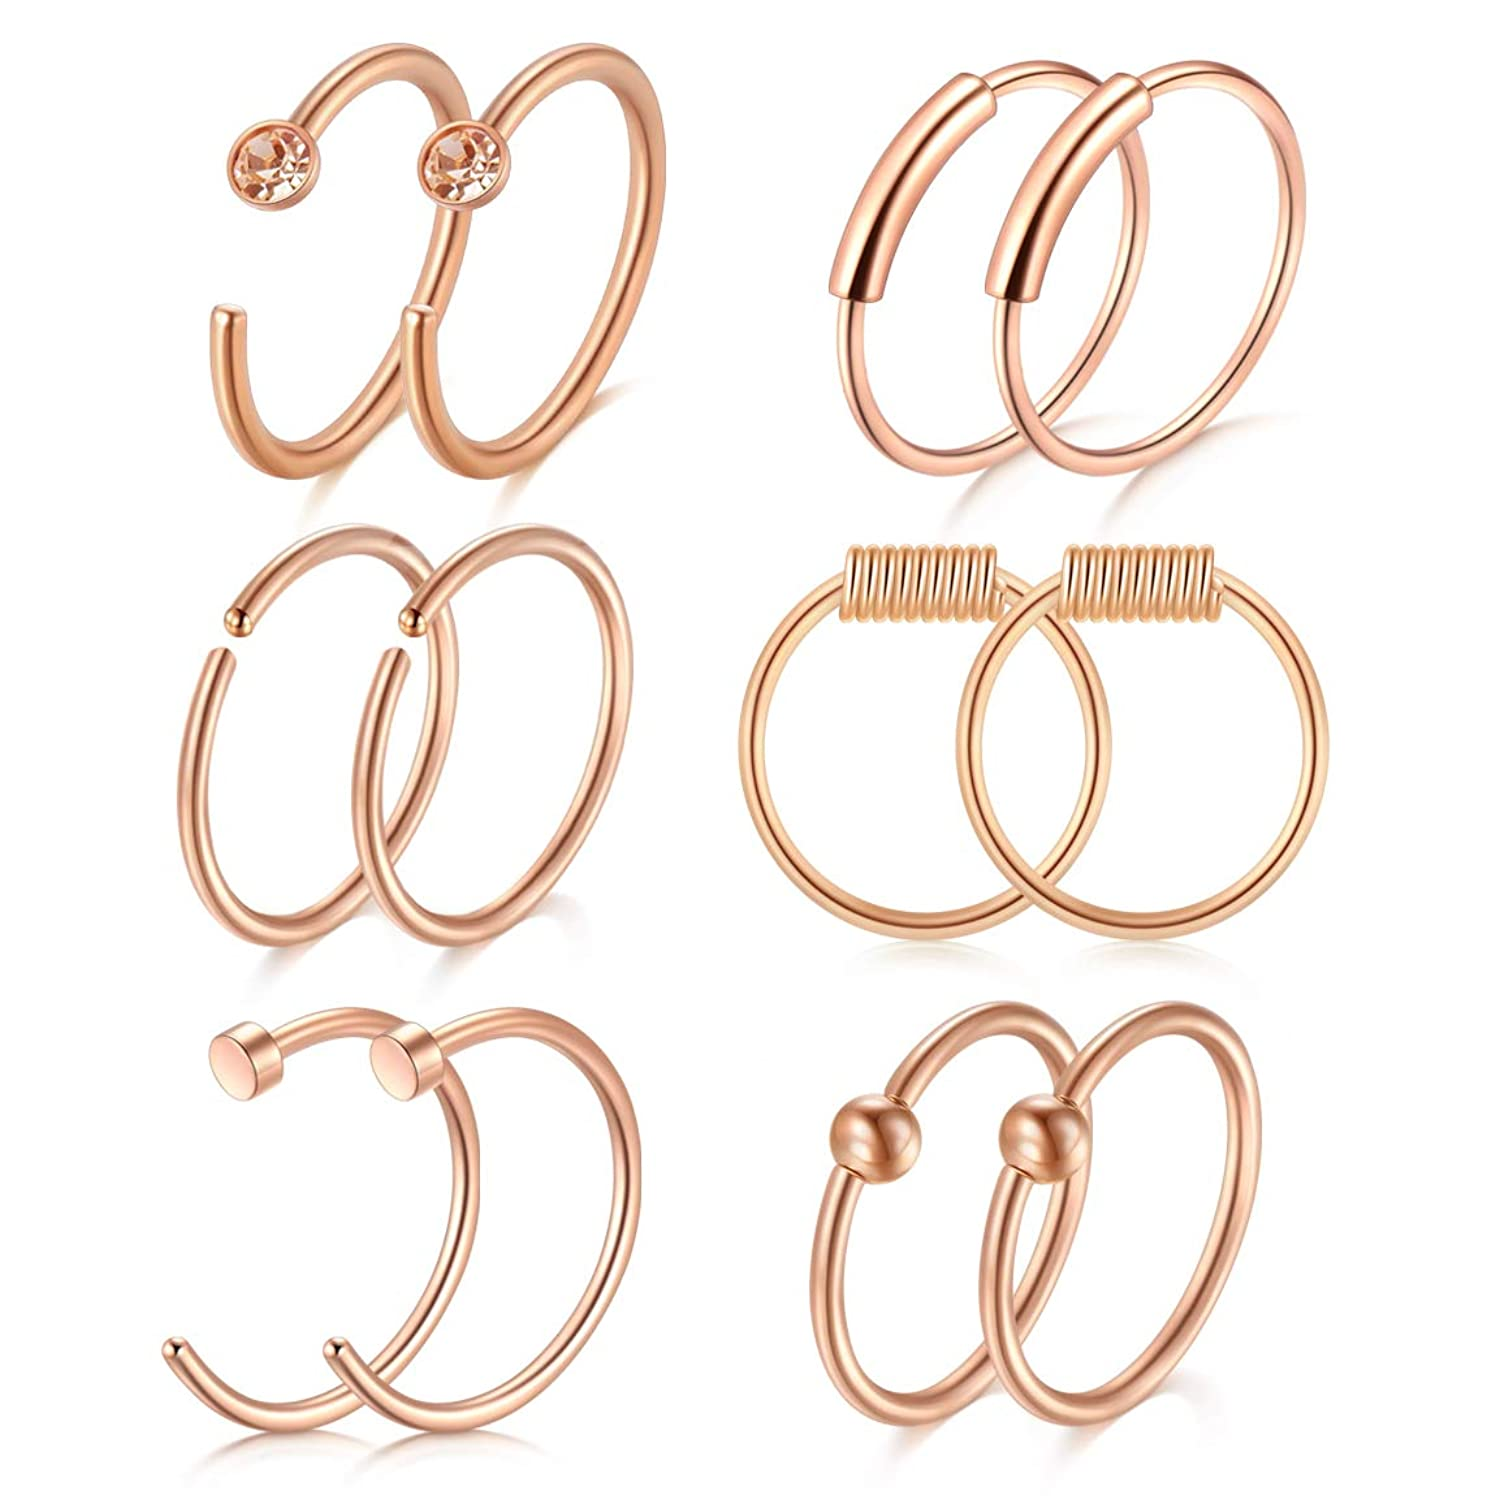 Briana Williams 22G 20G 18G Stainless Steel Nose Rings Hoop Tragus Cartilage Helix Ring Lip Septum Piercing Ring 8mm 10mm Silver Rose Gold Nose Hoop